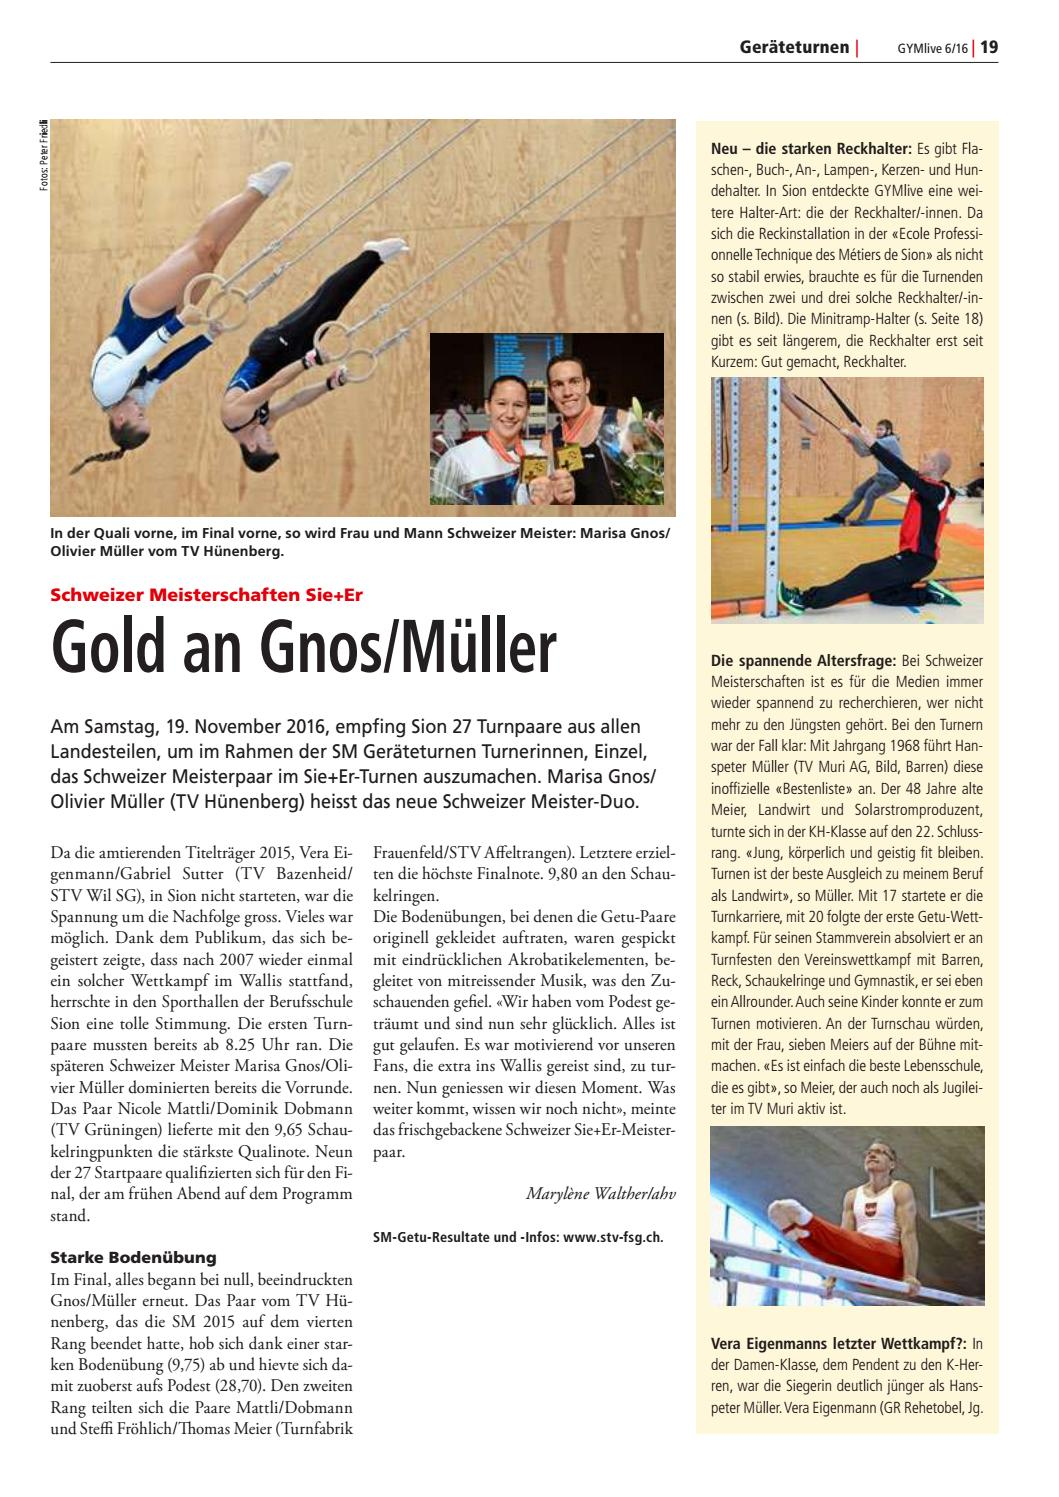 Gymlive 6/2016 by Schweizerischer Turnverband - issuu